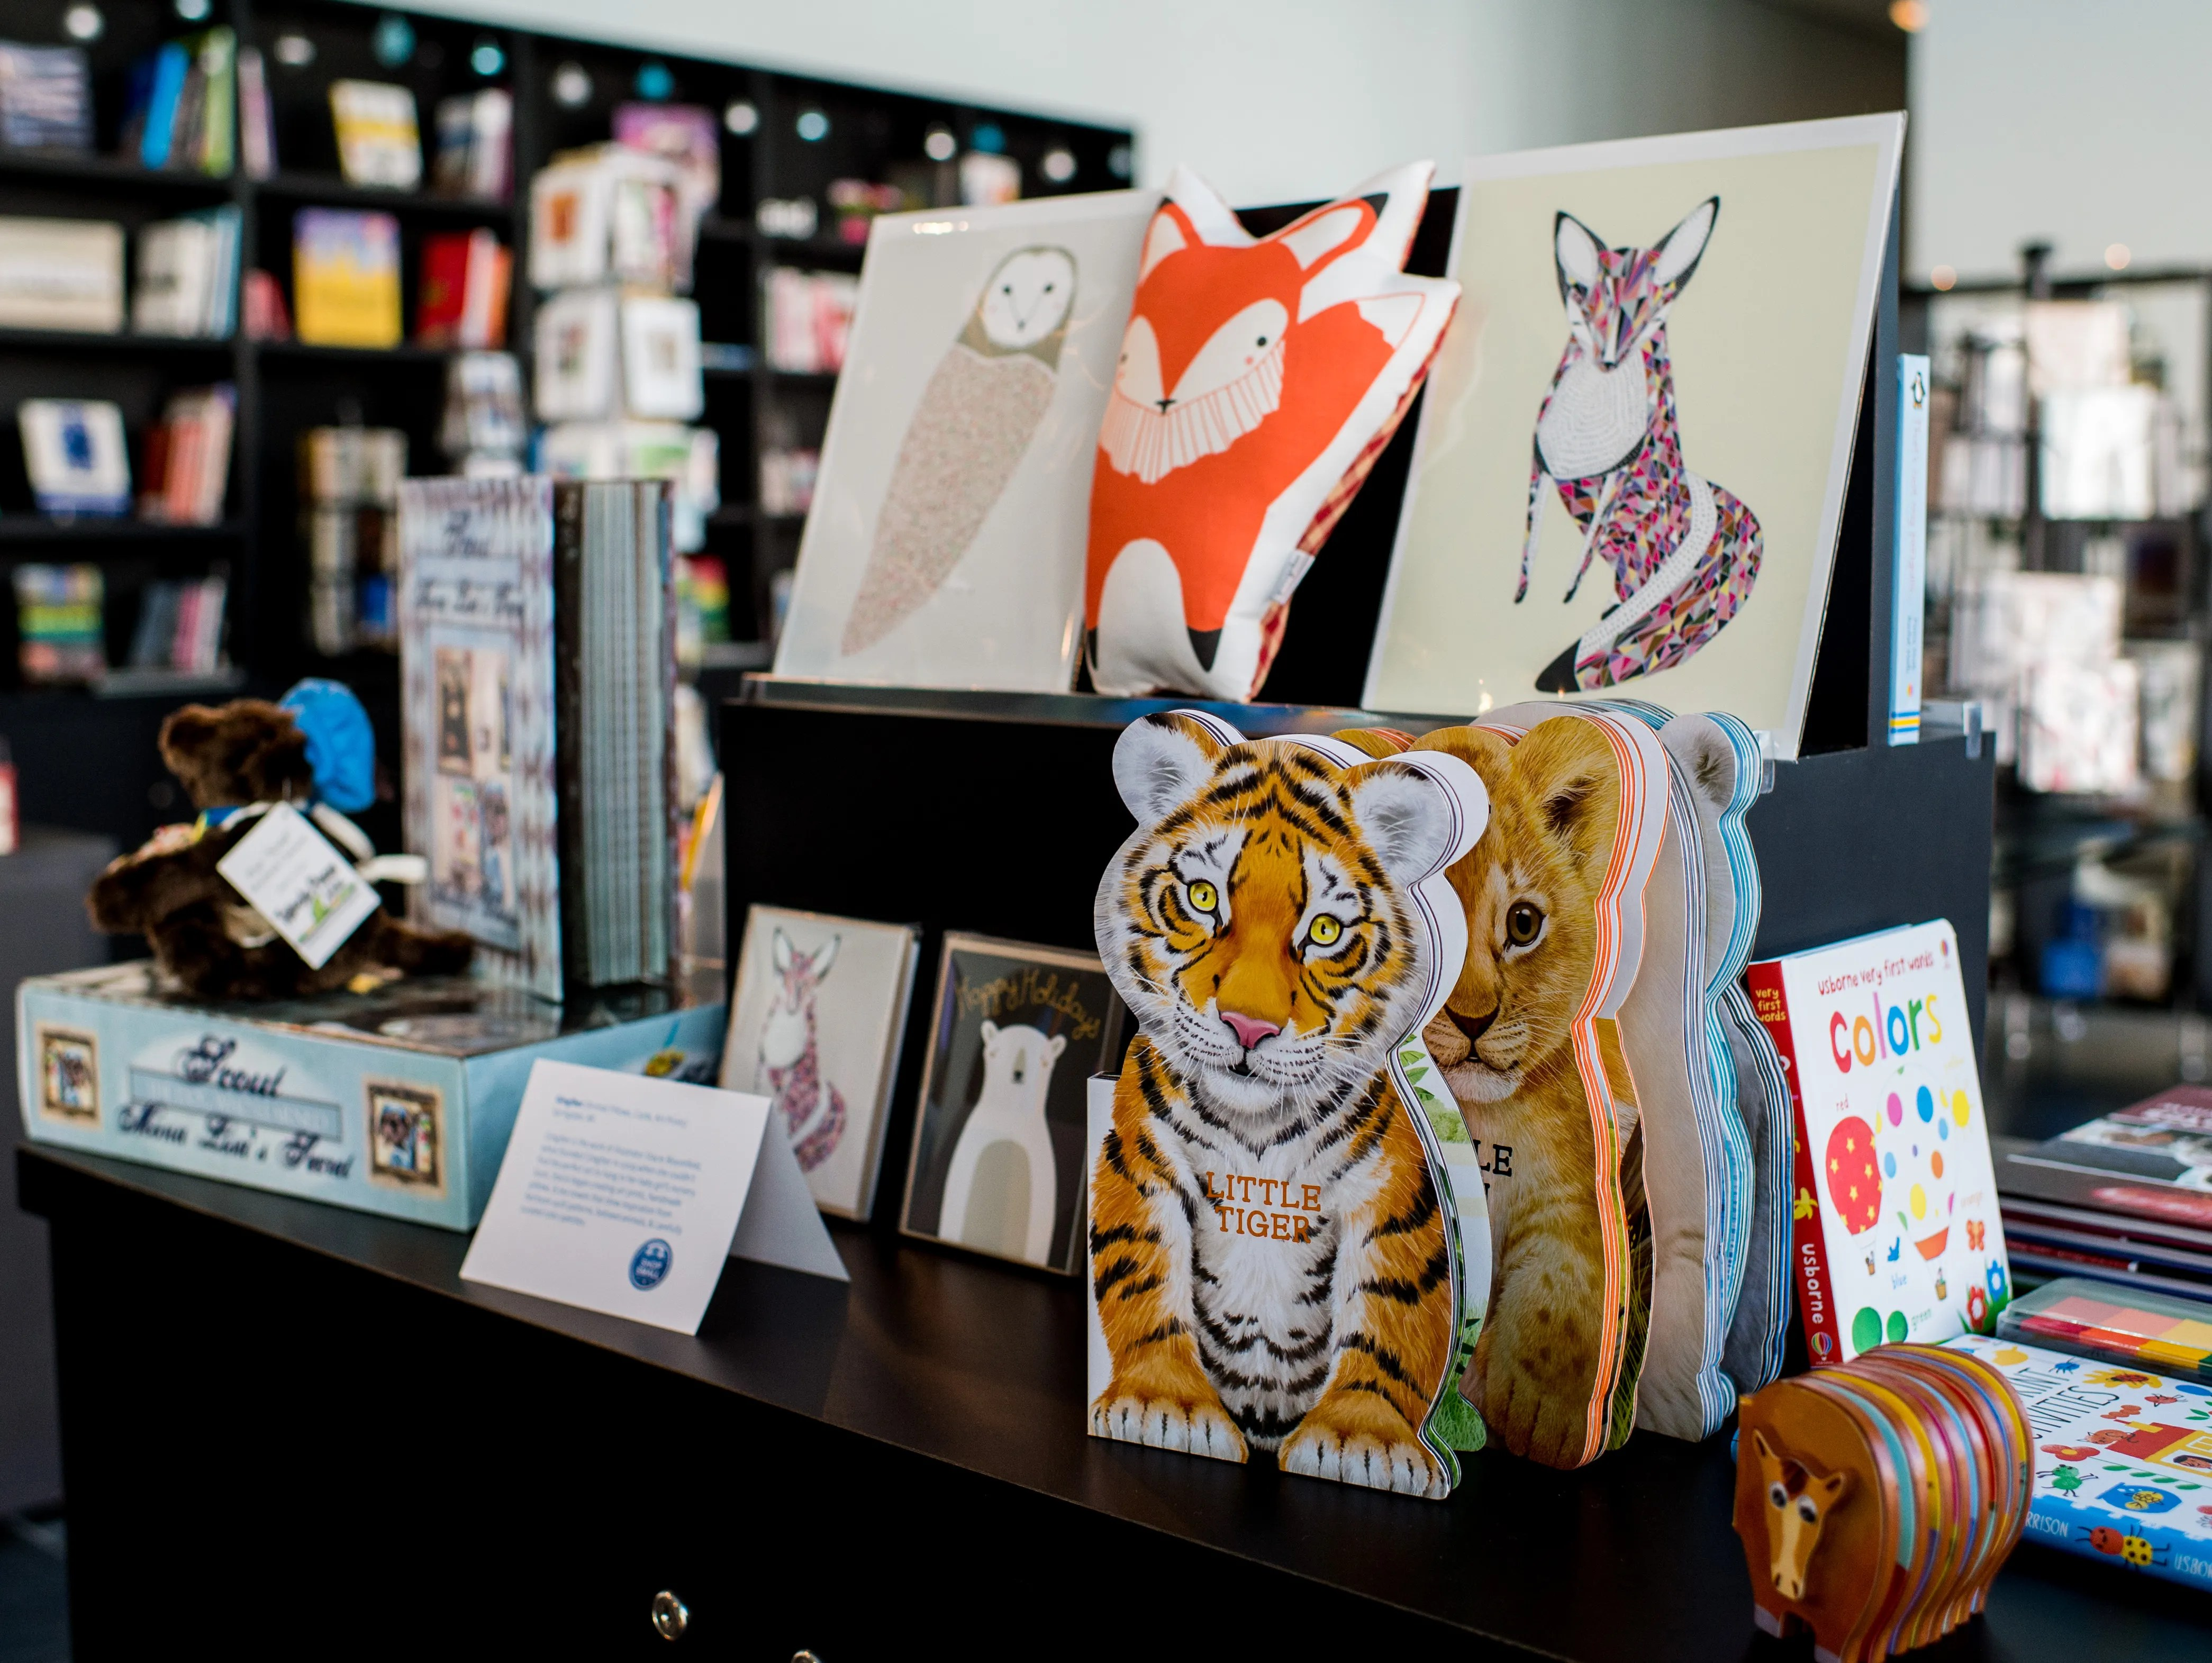 5 Local Stores You May Not Have Thought Of For Gifts